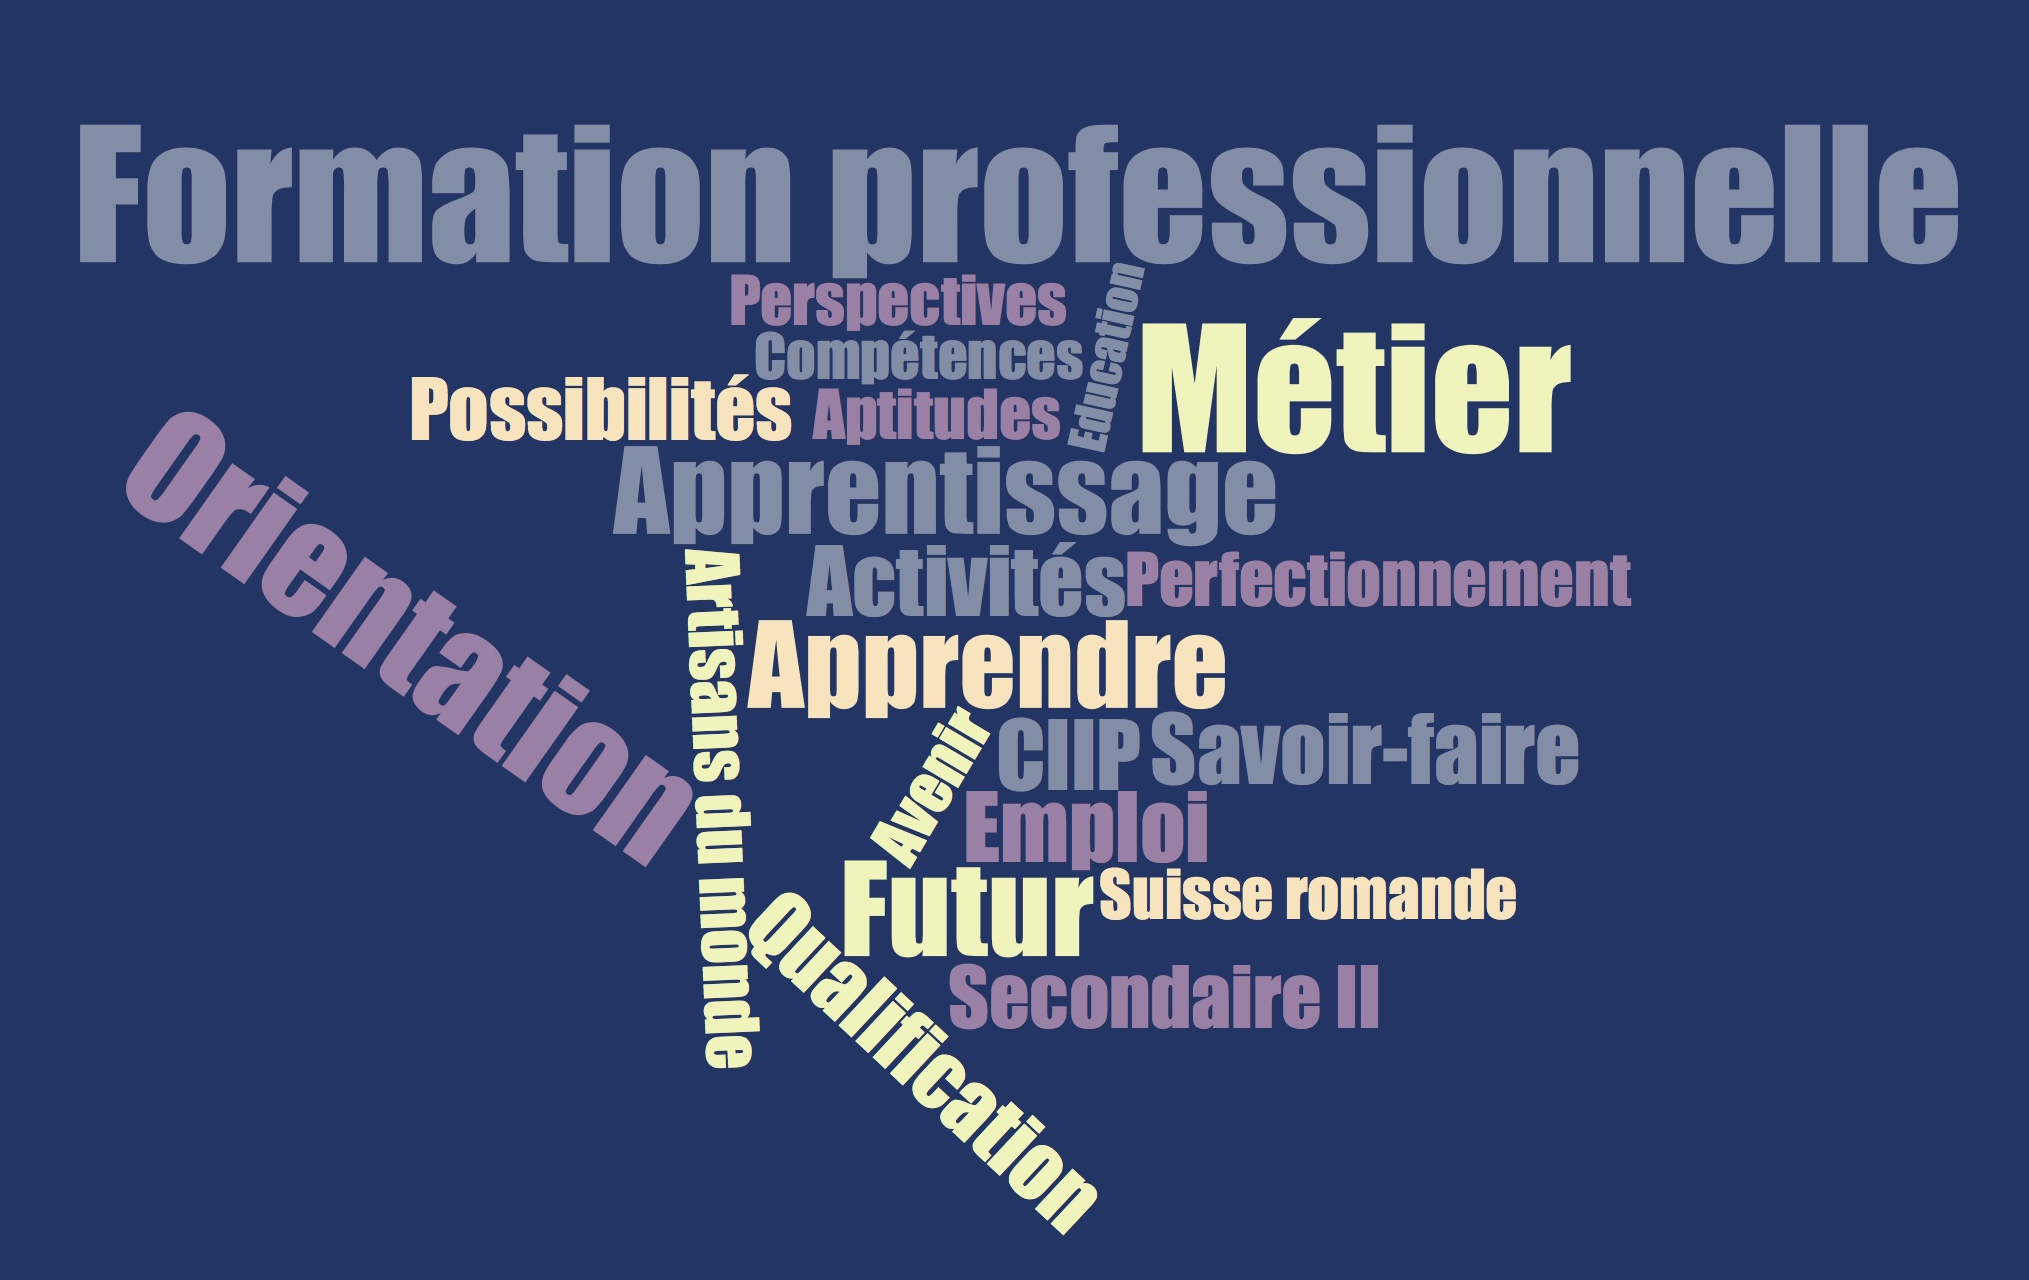 Preview image for LOM object Formation professionnelle